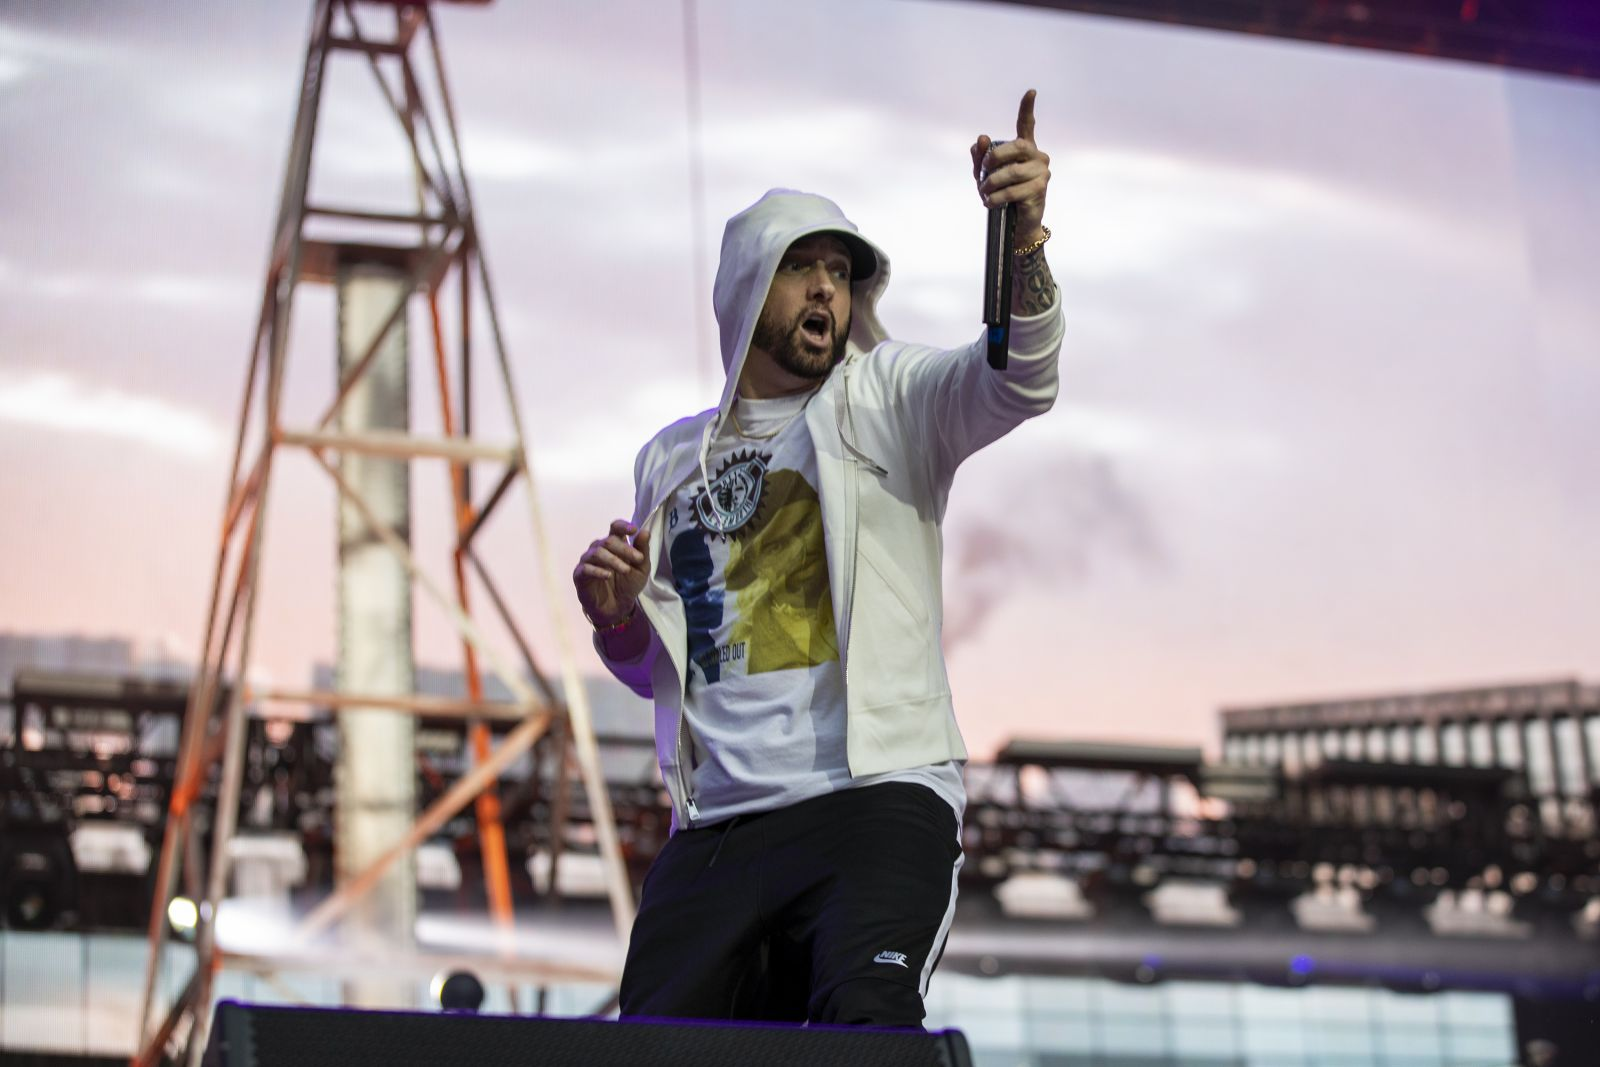 Eminem's 2018 performance at London day 1 UK Revival Tour. Photo Credit: Jeremy Deputat